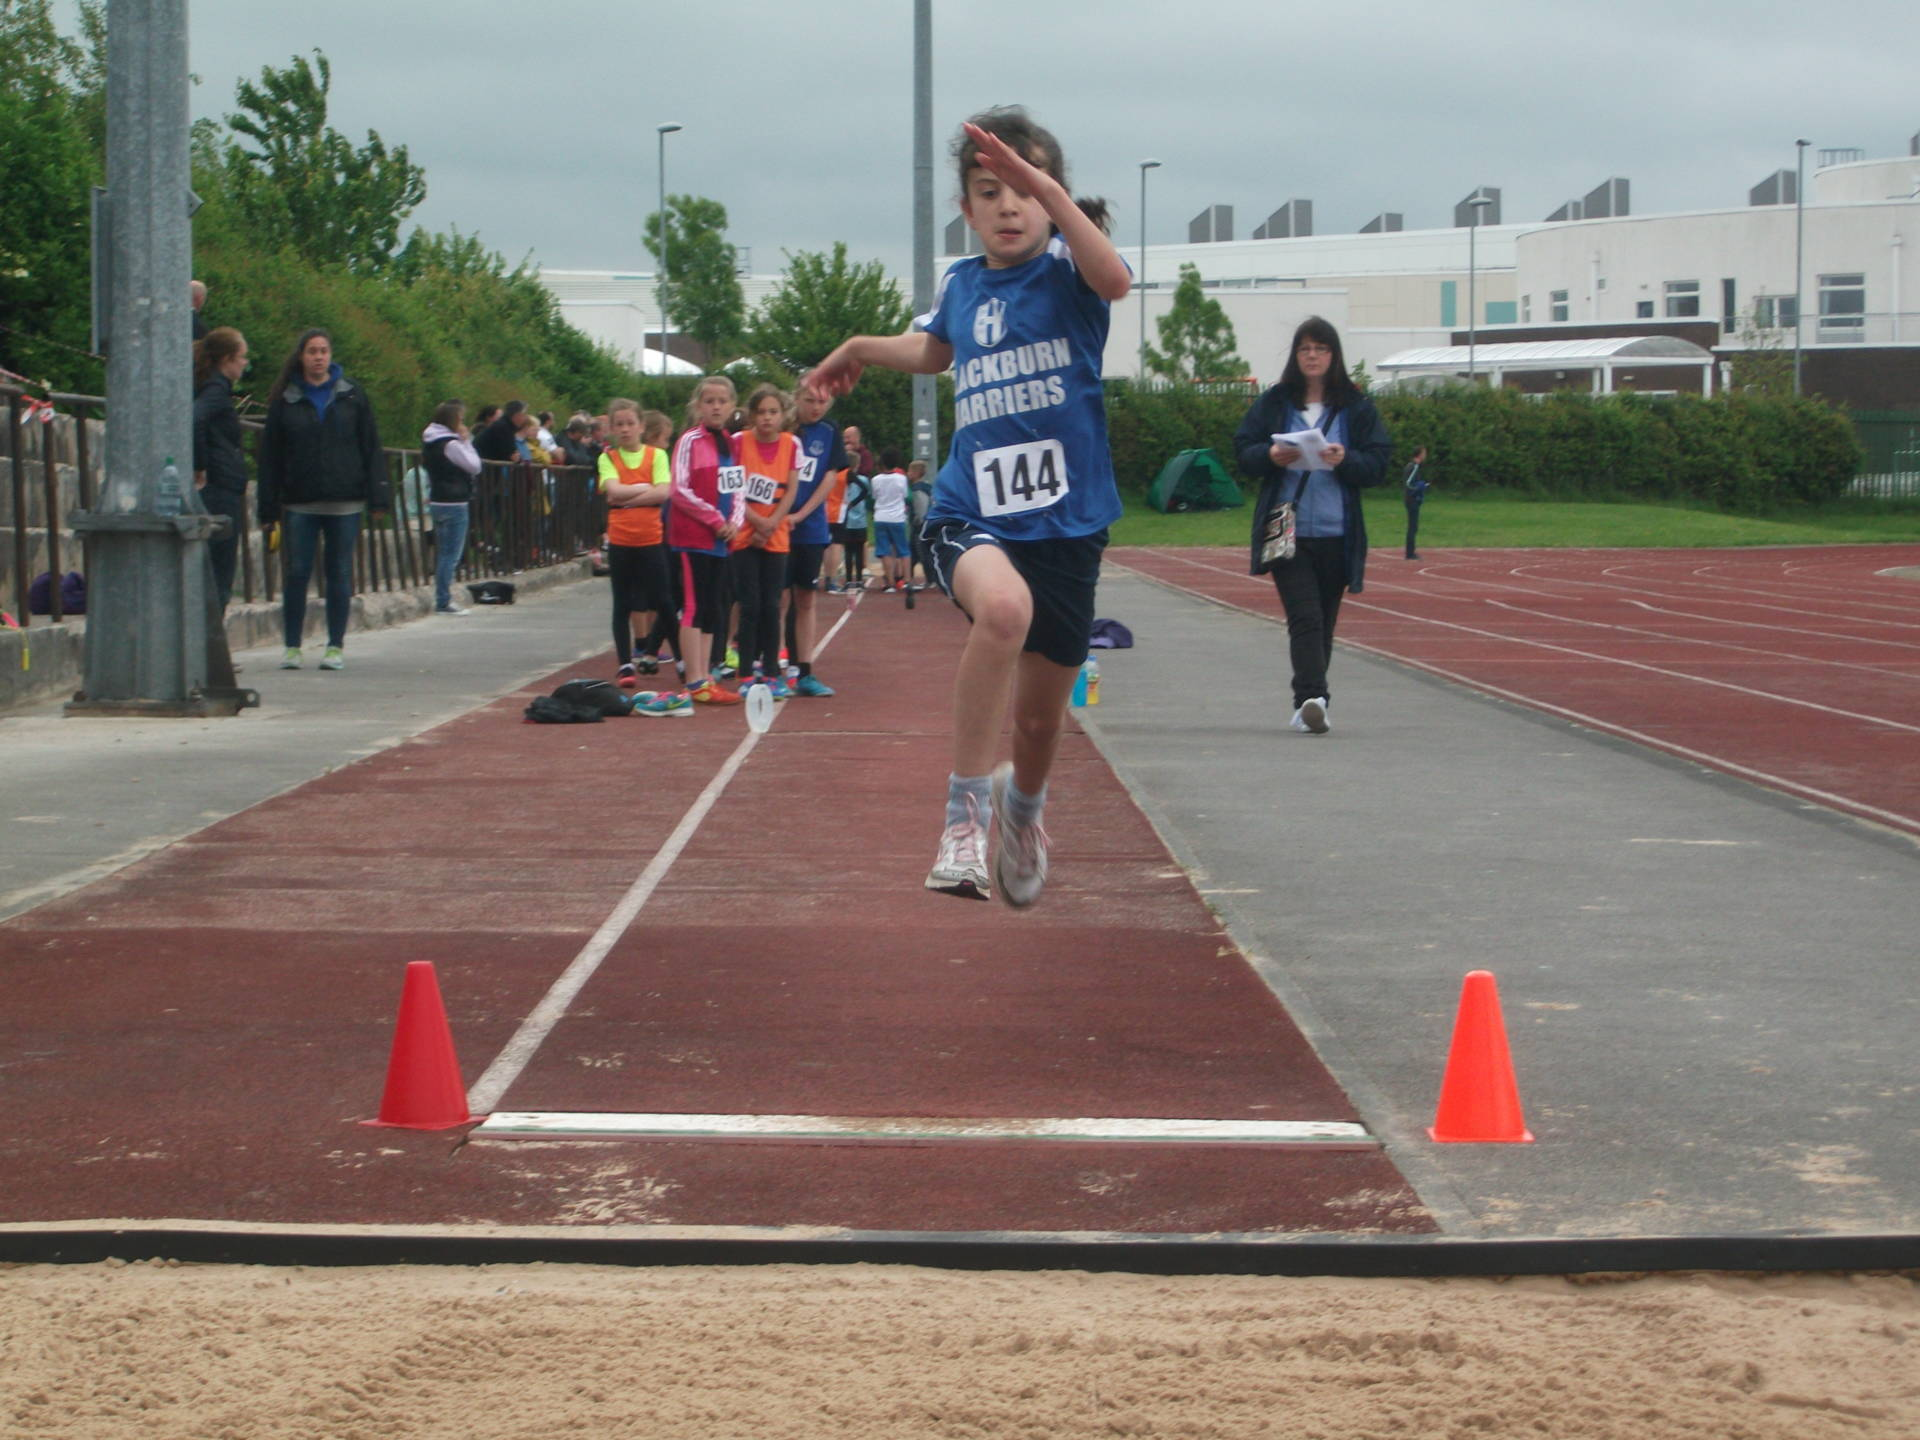 Harriers U11's shine at Burnley Open Meeting with PB's and several wins